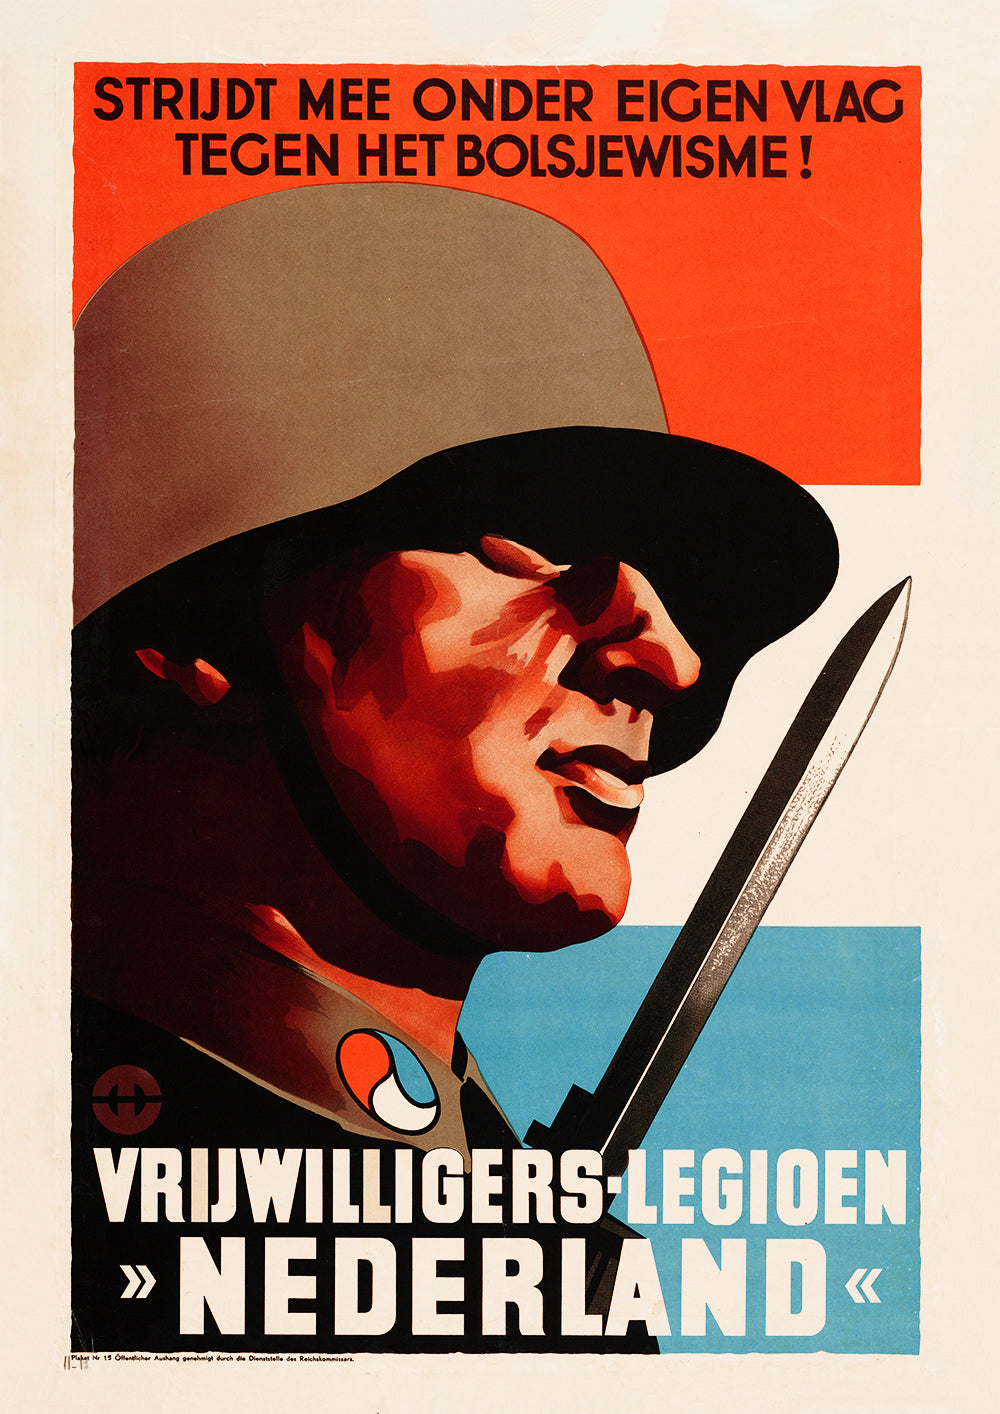 Fight under your own flag against Bolshevism! – Dutch World War Two poster